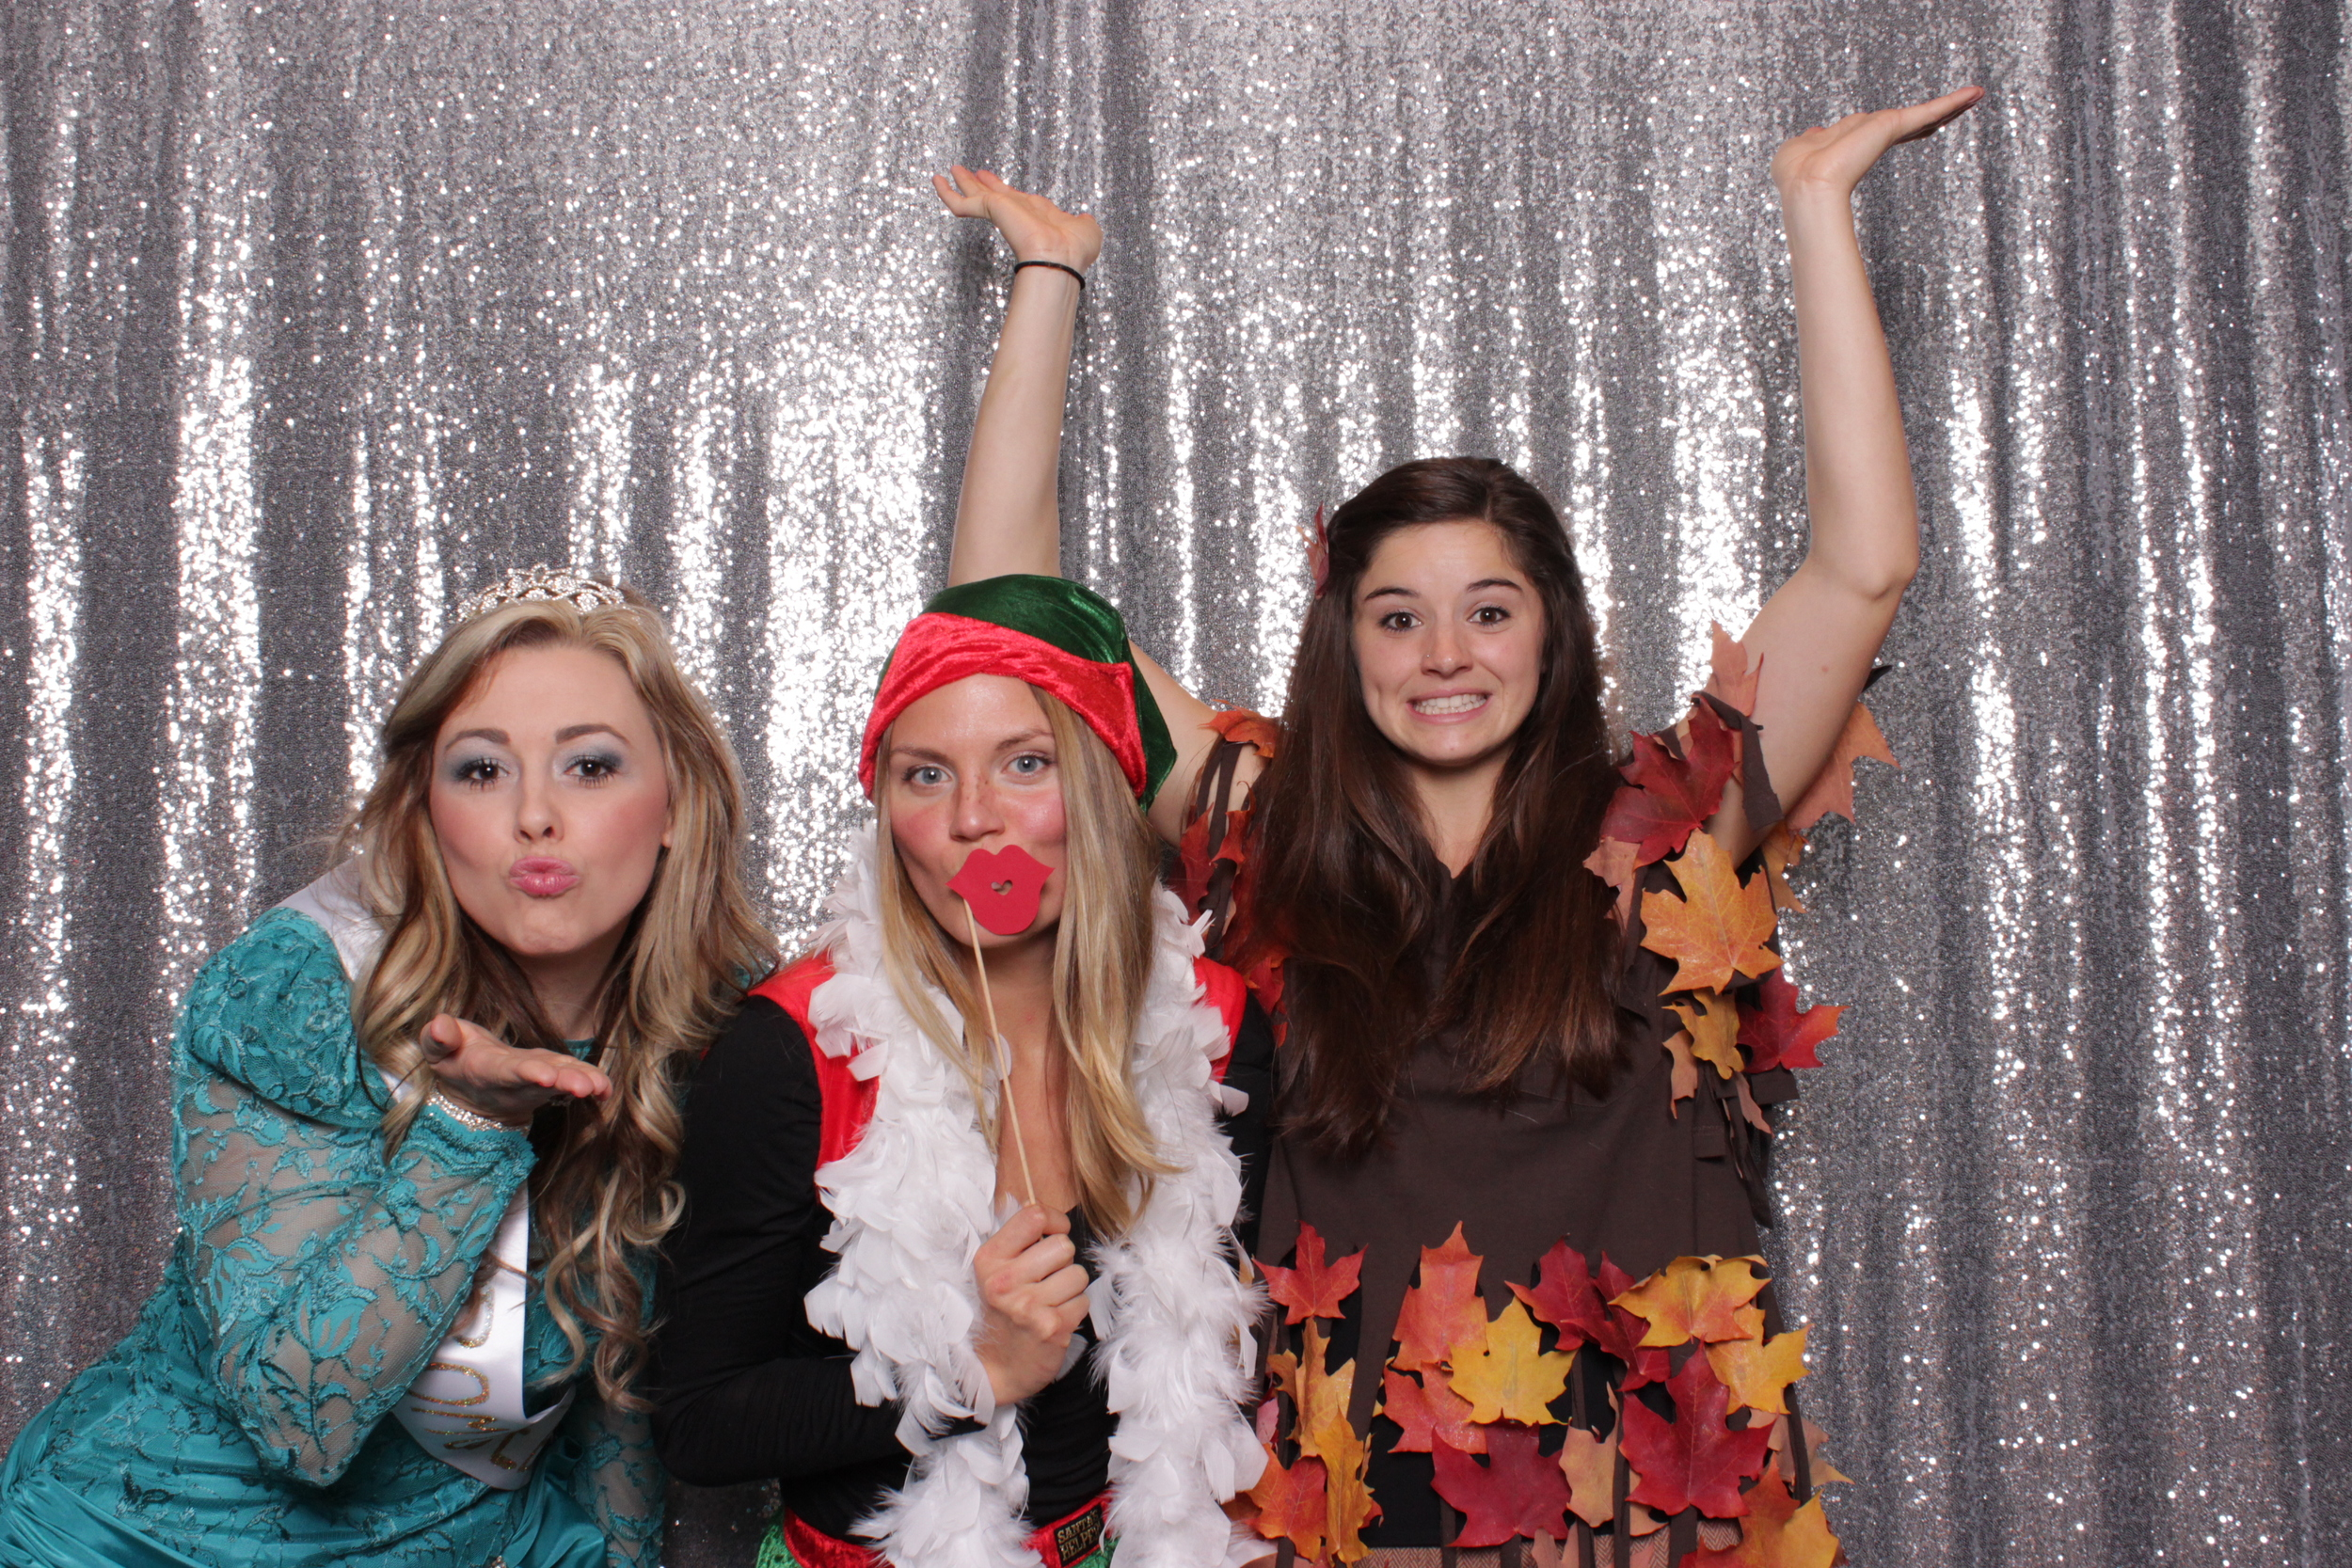 A prom queen, an elf and a tree. Not pictured is her lumberjack :D